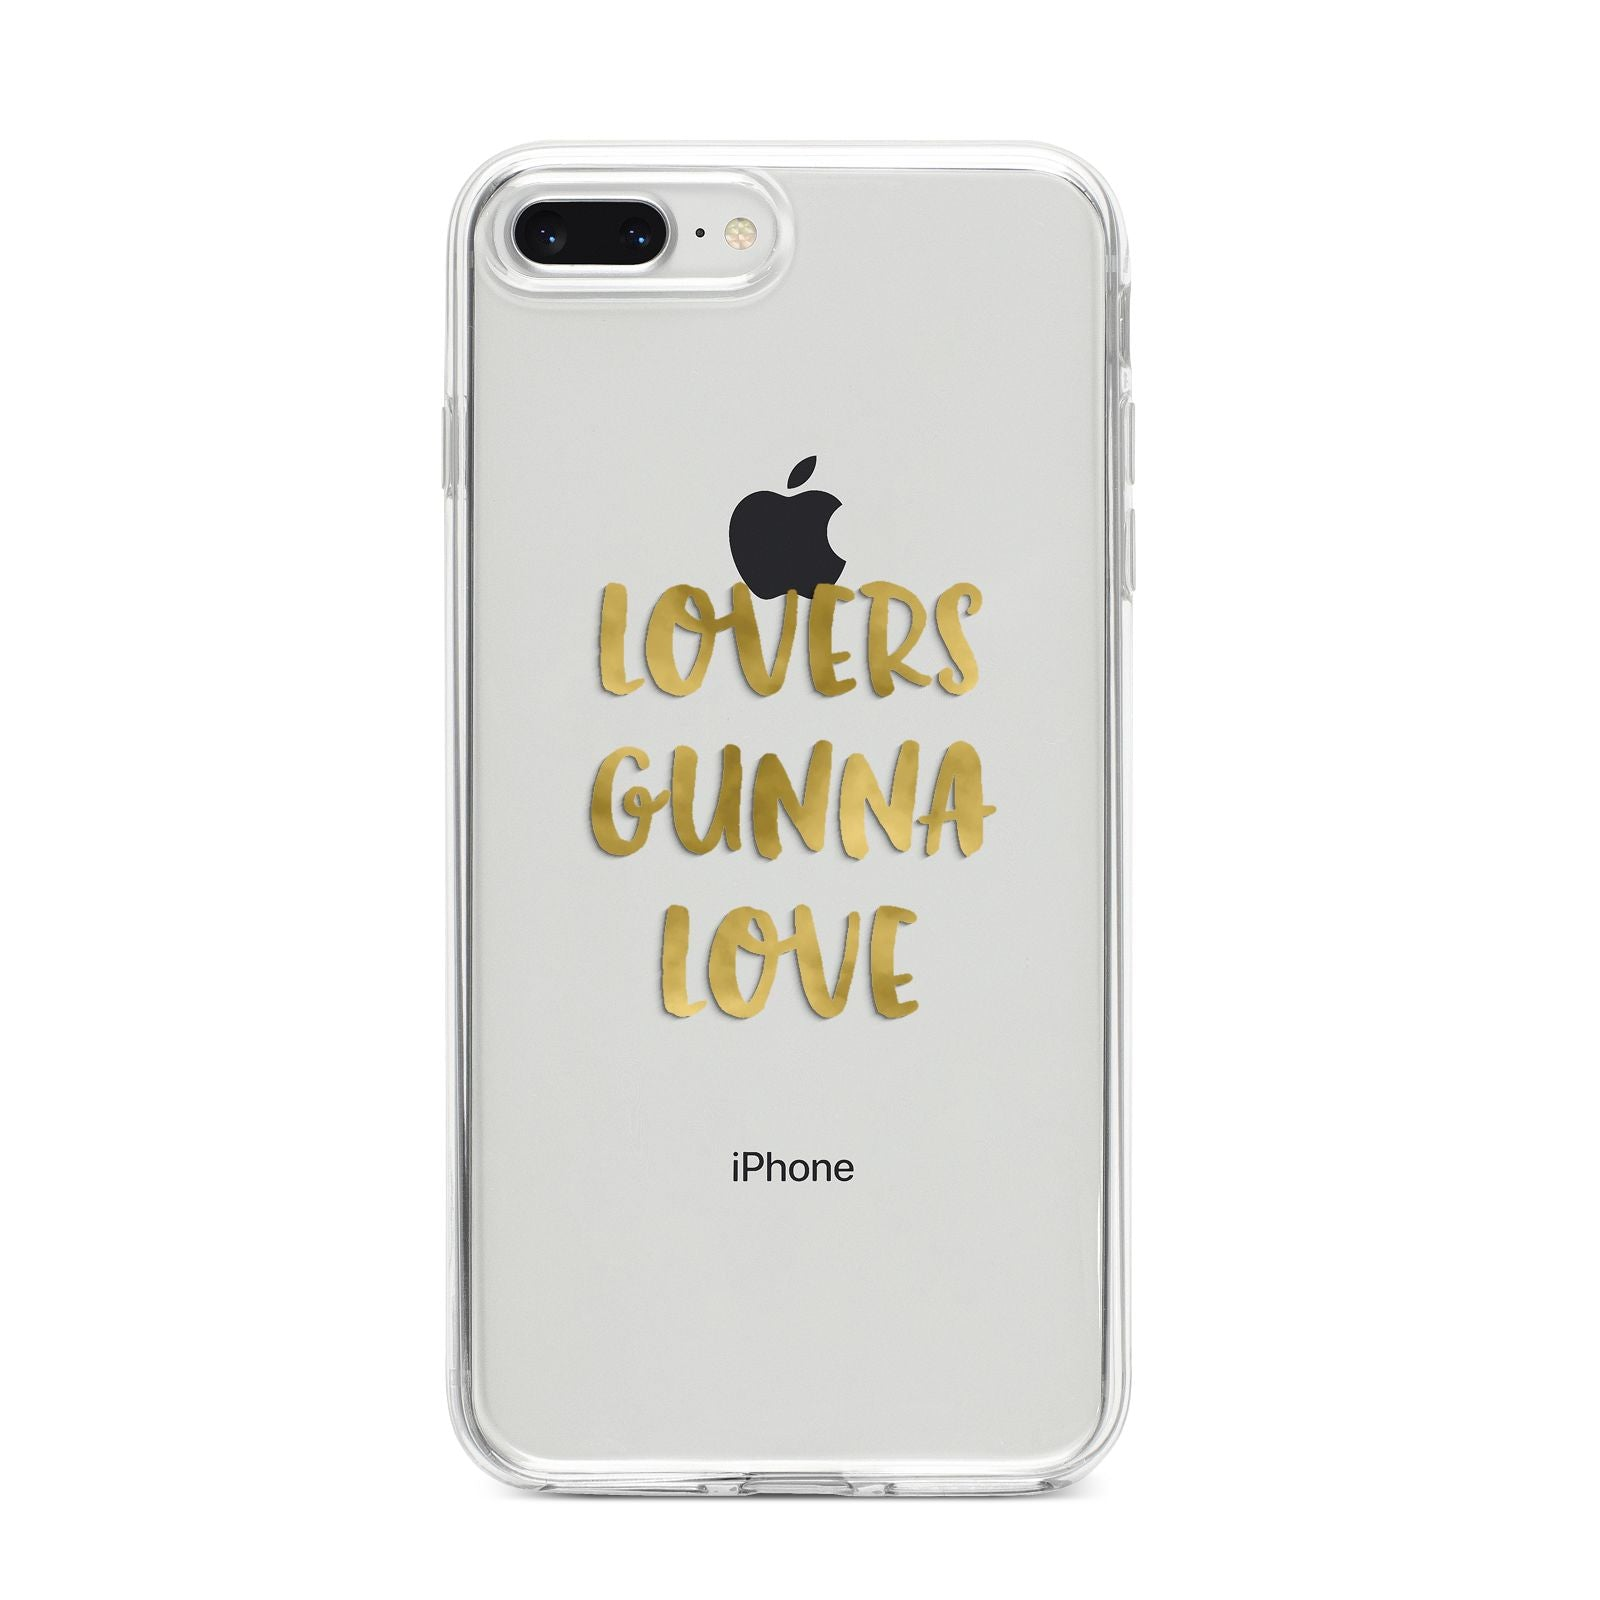 Lovers Gunna Love Real Gold Foil iPhone 8 Plus Bumper Case on Silver iPhone